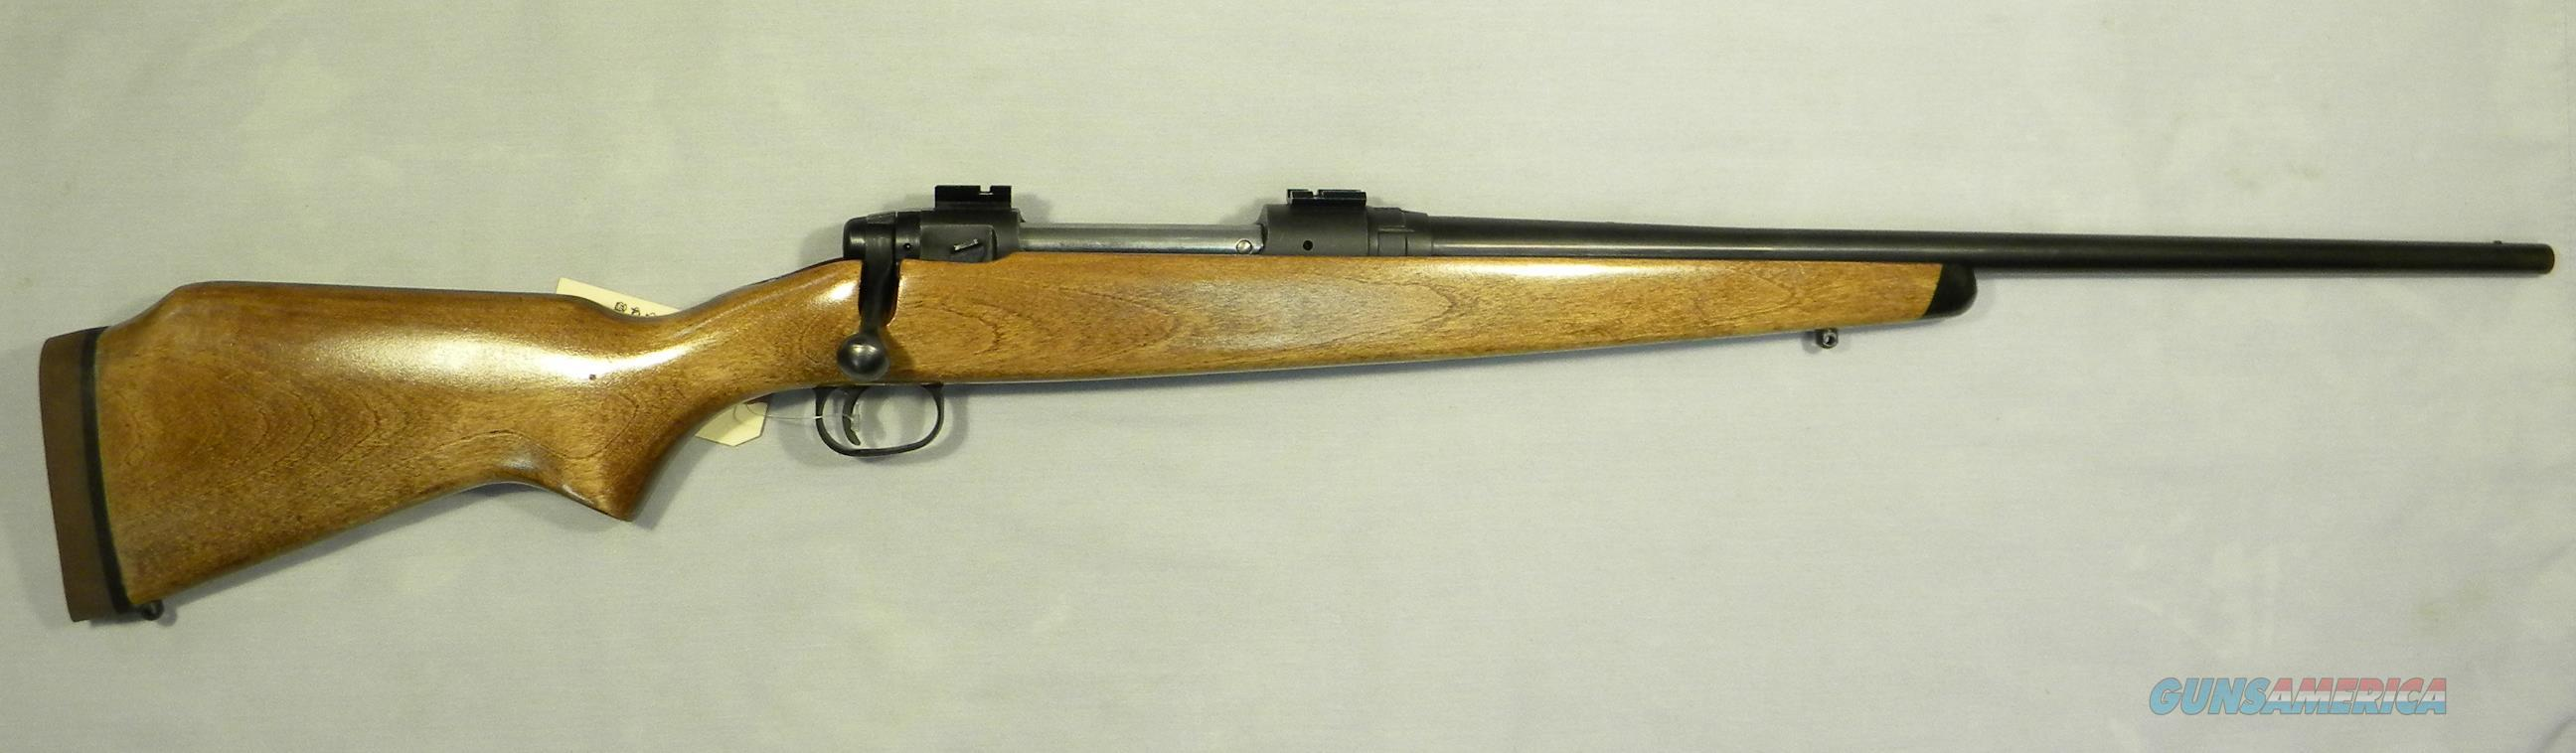 Savage 110E Bolt-Action Rifle, .270 Win, Youth Sized Wood Stock  Guns > Rifles > Savage Rifles > 10/110